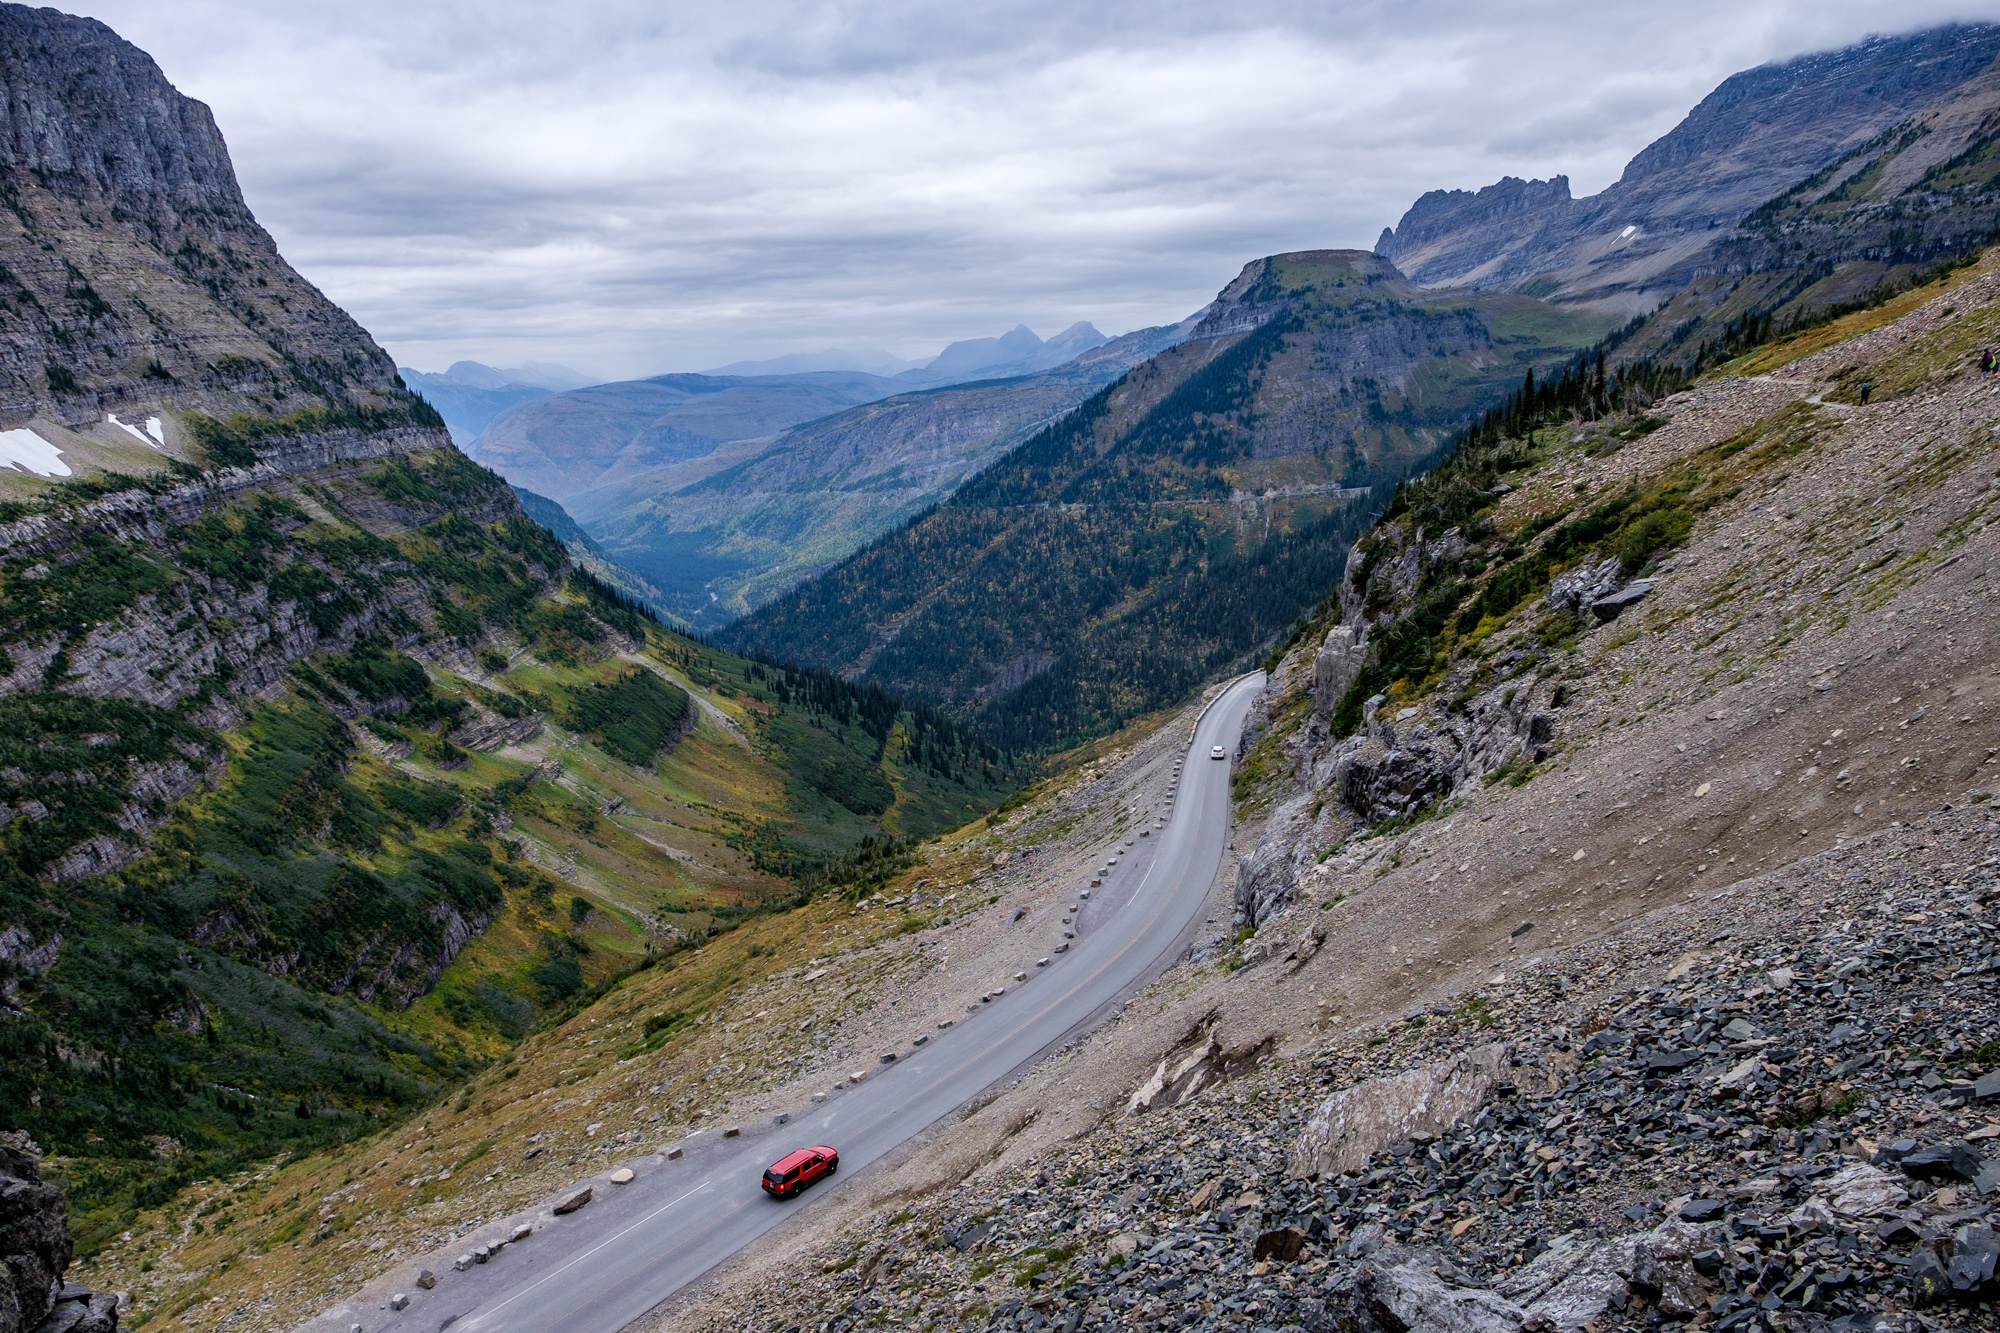 One of the very cool things about this trail is the birdseye view of Going-to-the-Sun Road.